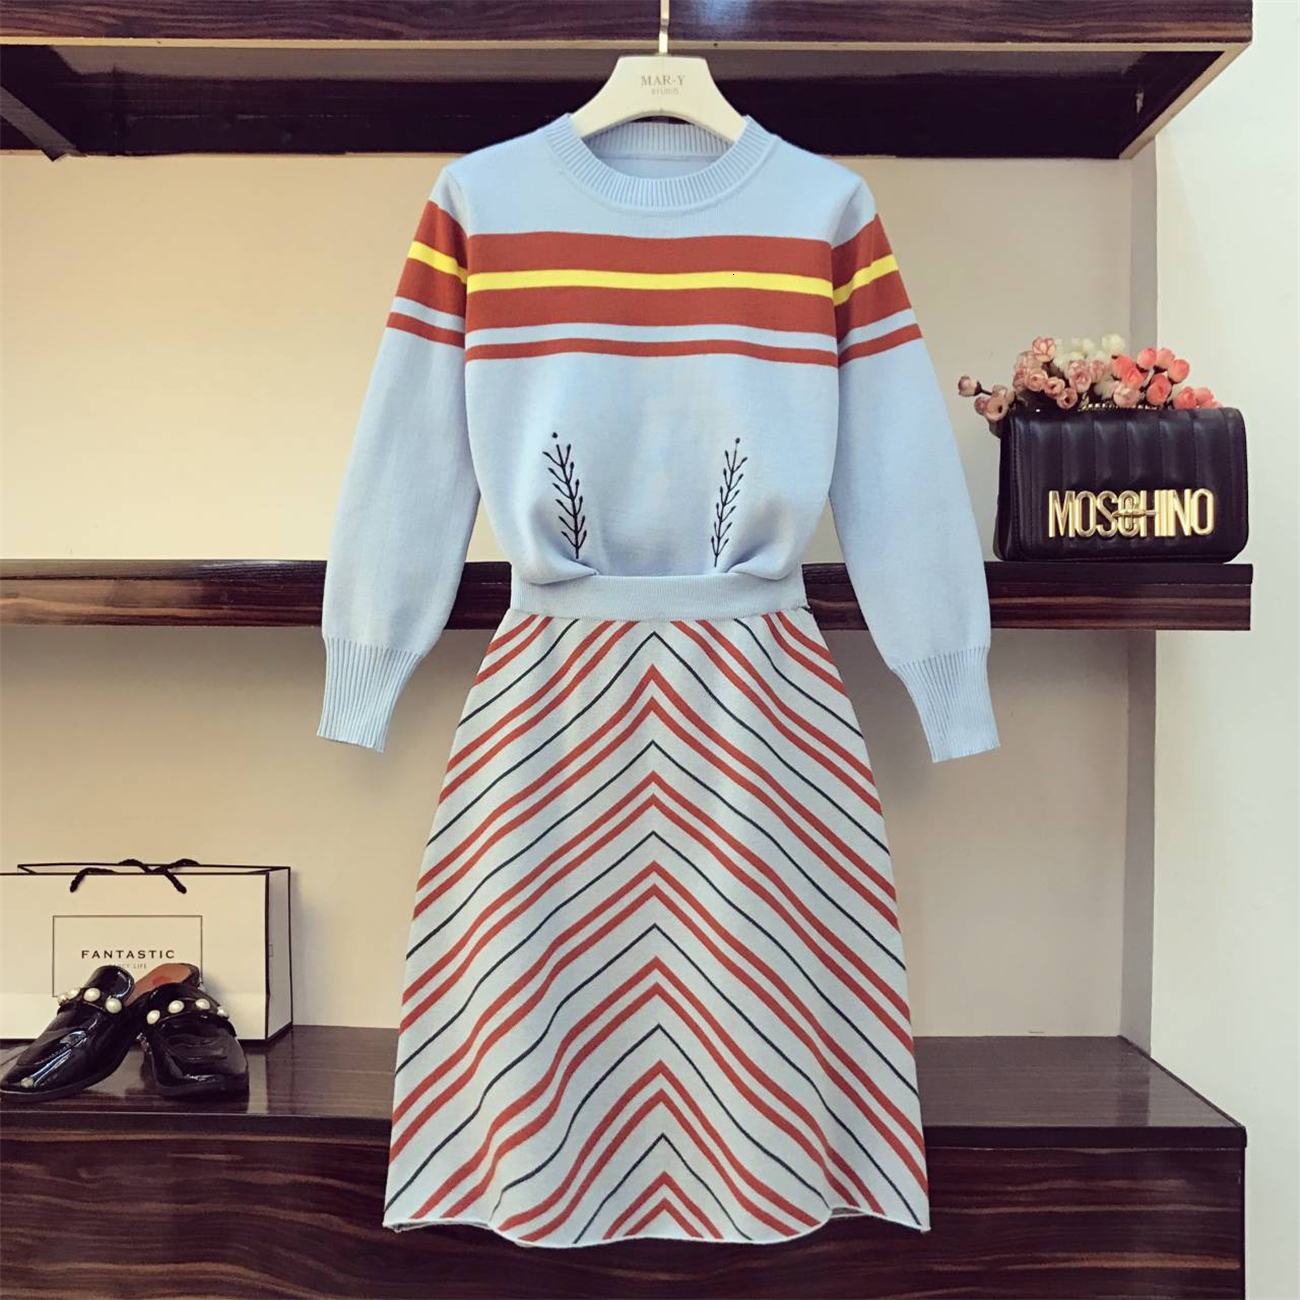 2019 Autumn Knitted Dress Suit For Women Two-piece Suit Long Sleeve Pull Sweater + Striped Skirt Girls Lady Fashion Skirts Set